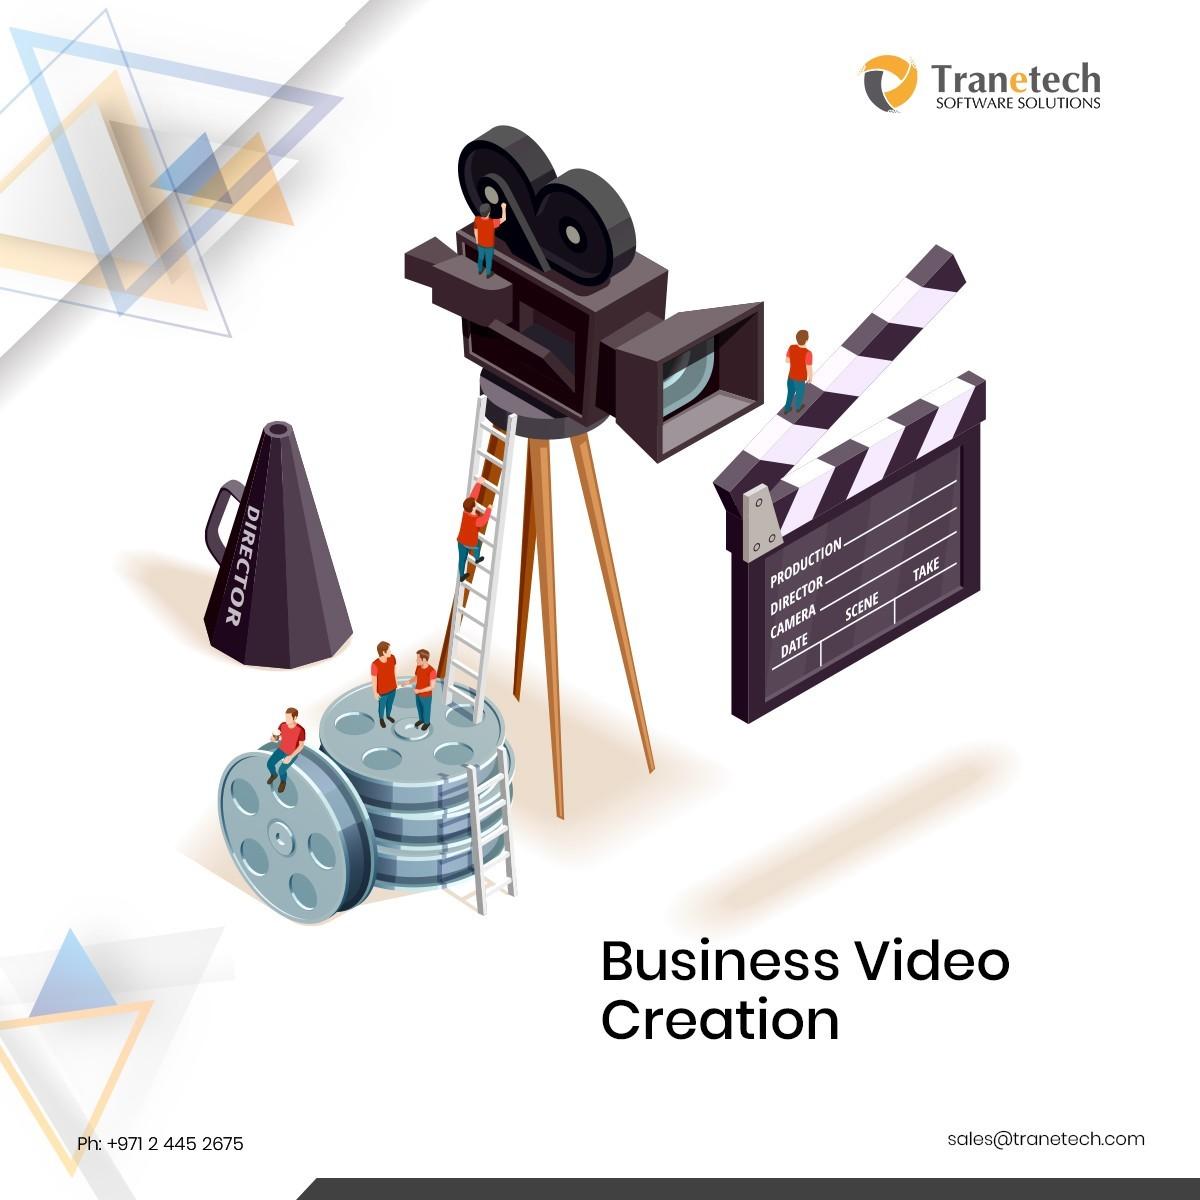 Business Video Creation